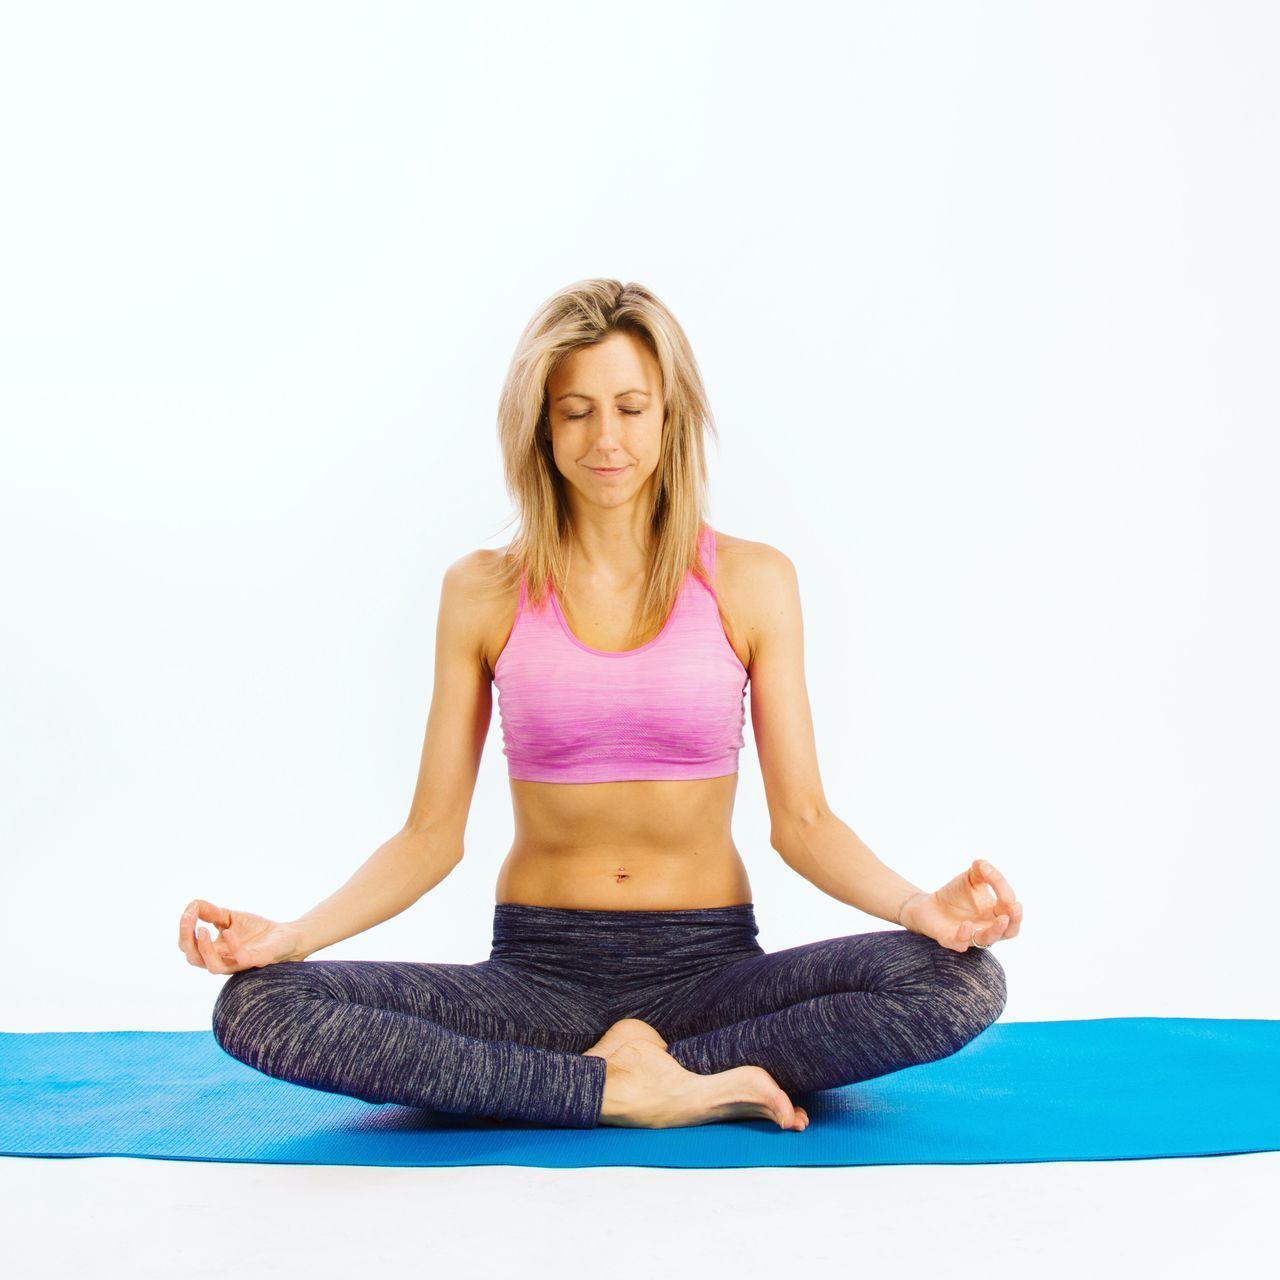 Serene yoga. Yoga Cross-legged Healthy Lifestyle Meditating Zen-like Studio Shot Lotus Position Sitting Wellbeing Blond Hair Full Length Serene People Relaxation One Person Lifestyles One Woman Only Women Flexibility Beautiful Woman Adult